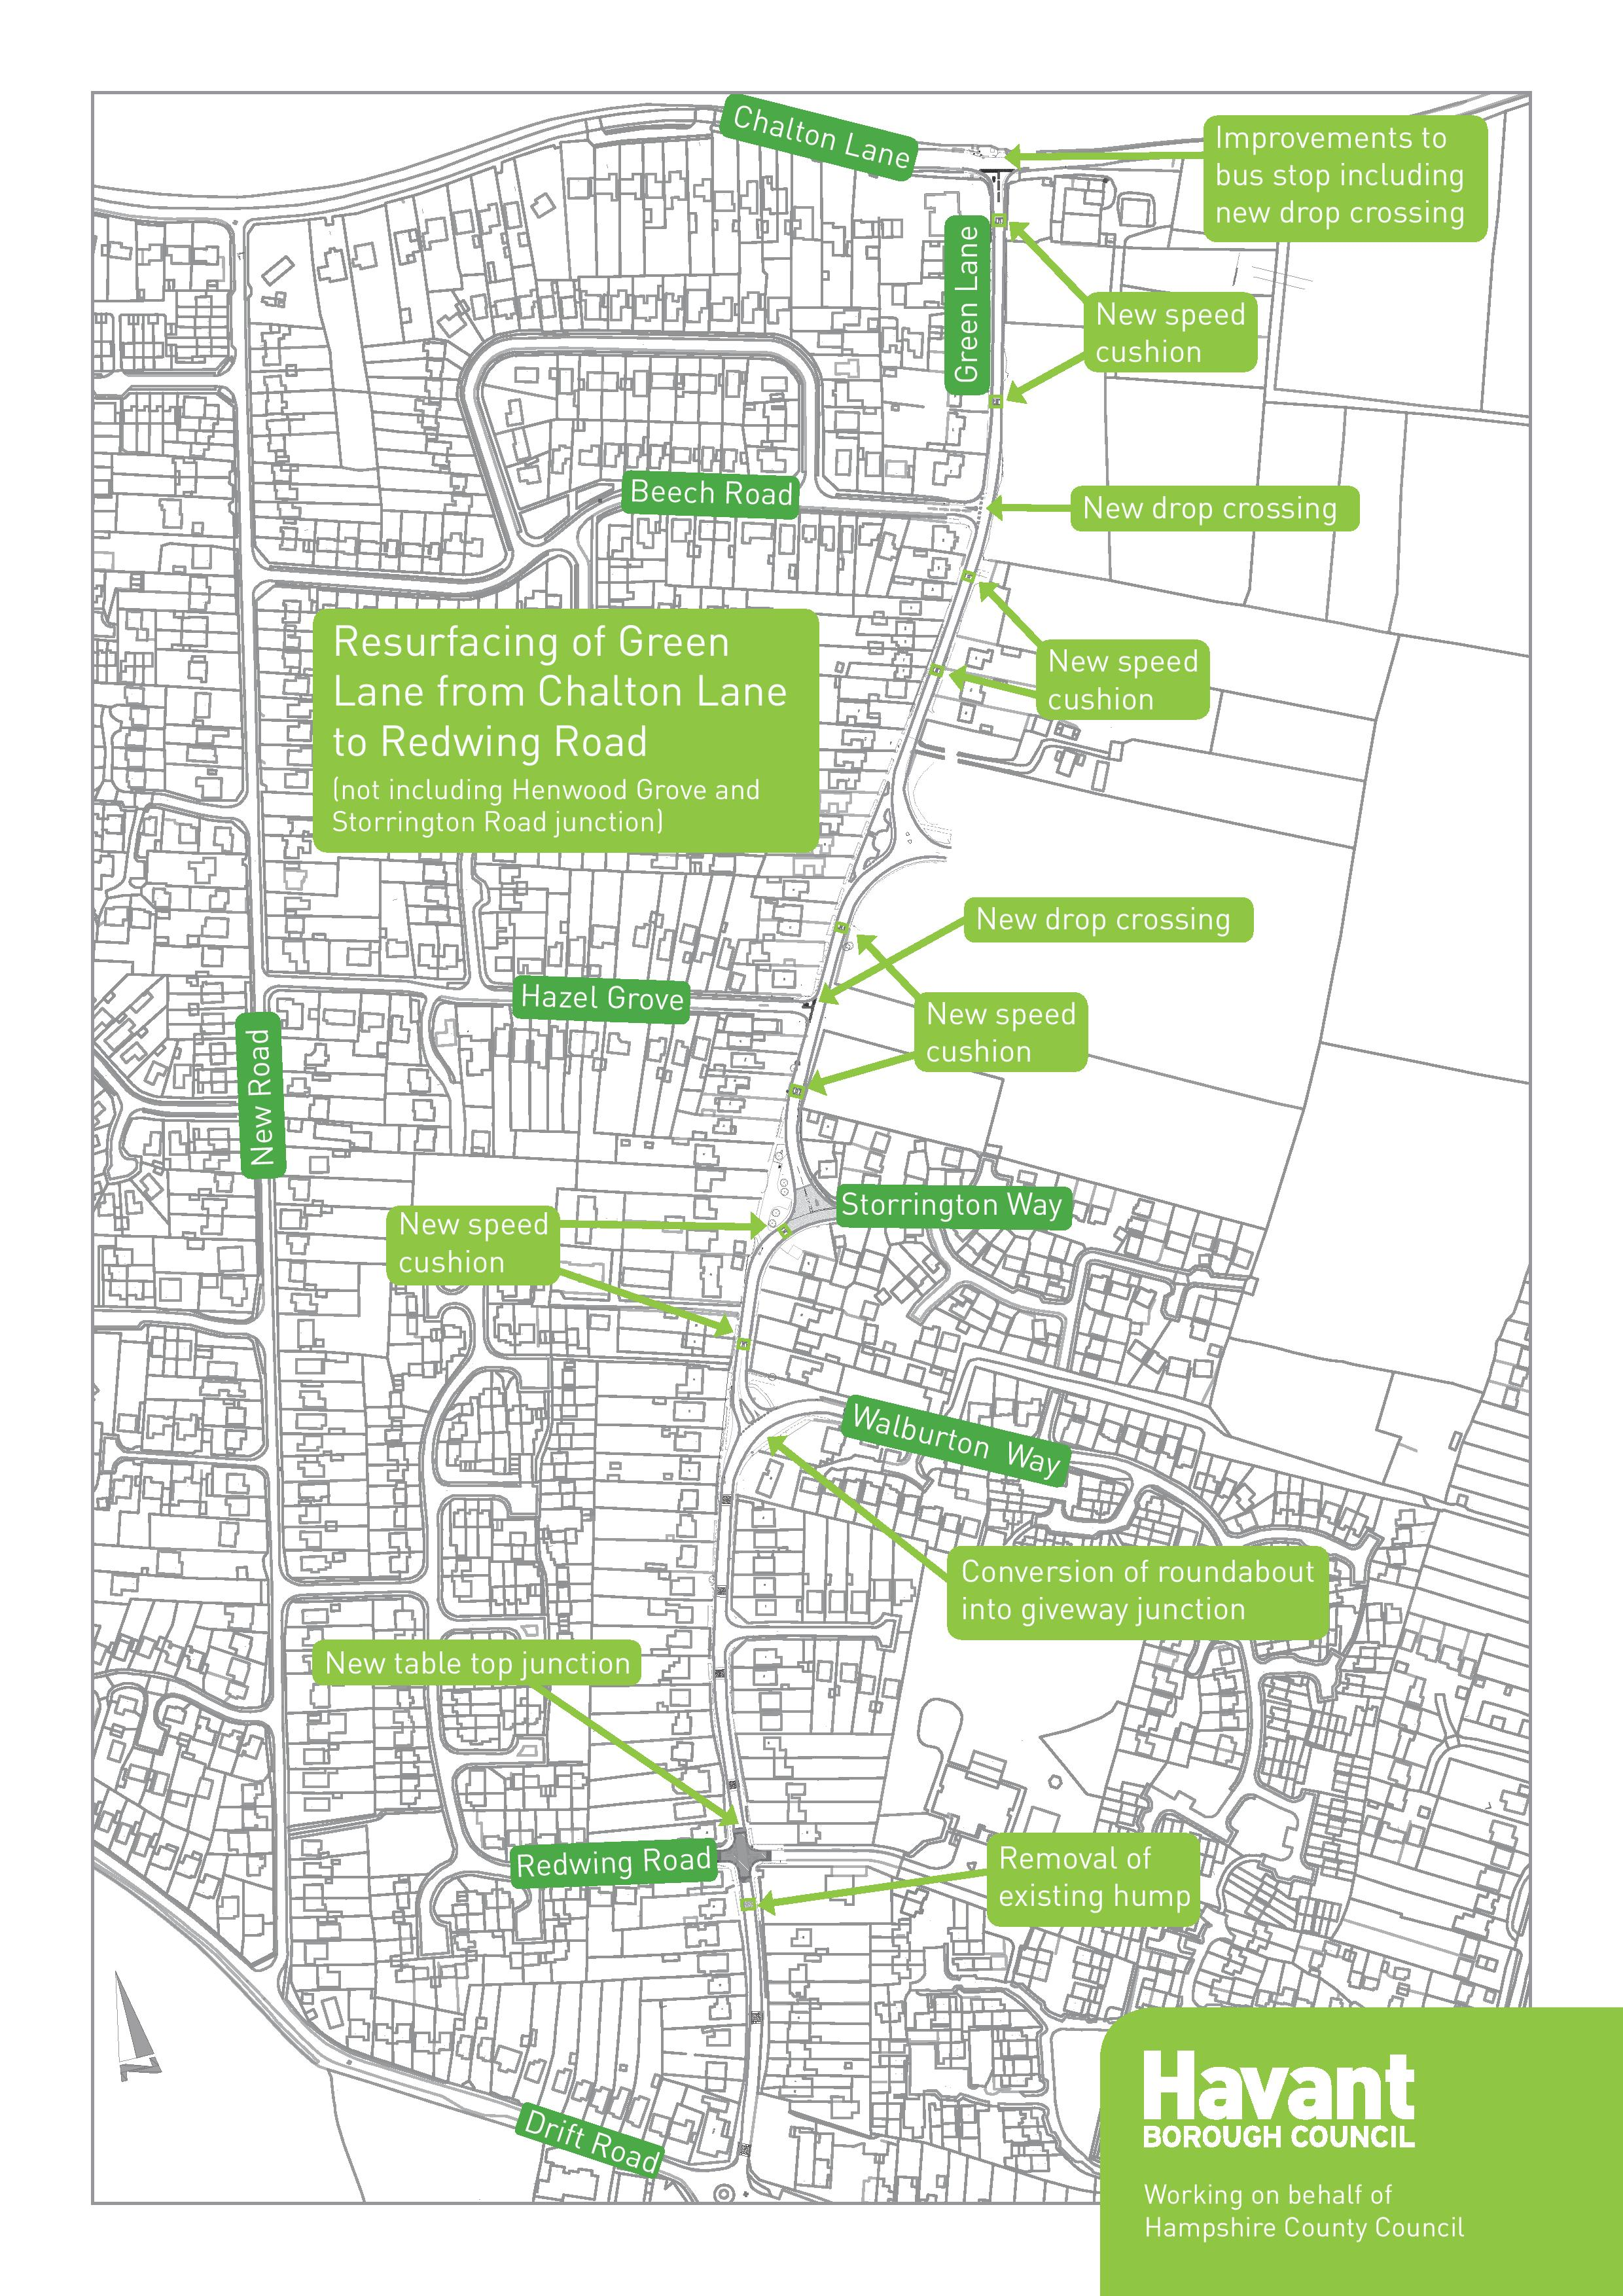 Green Lane Traffic Calming work - New News